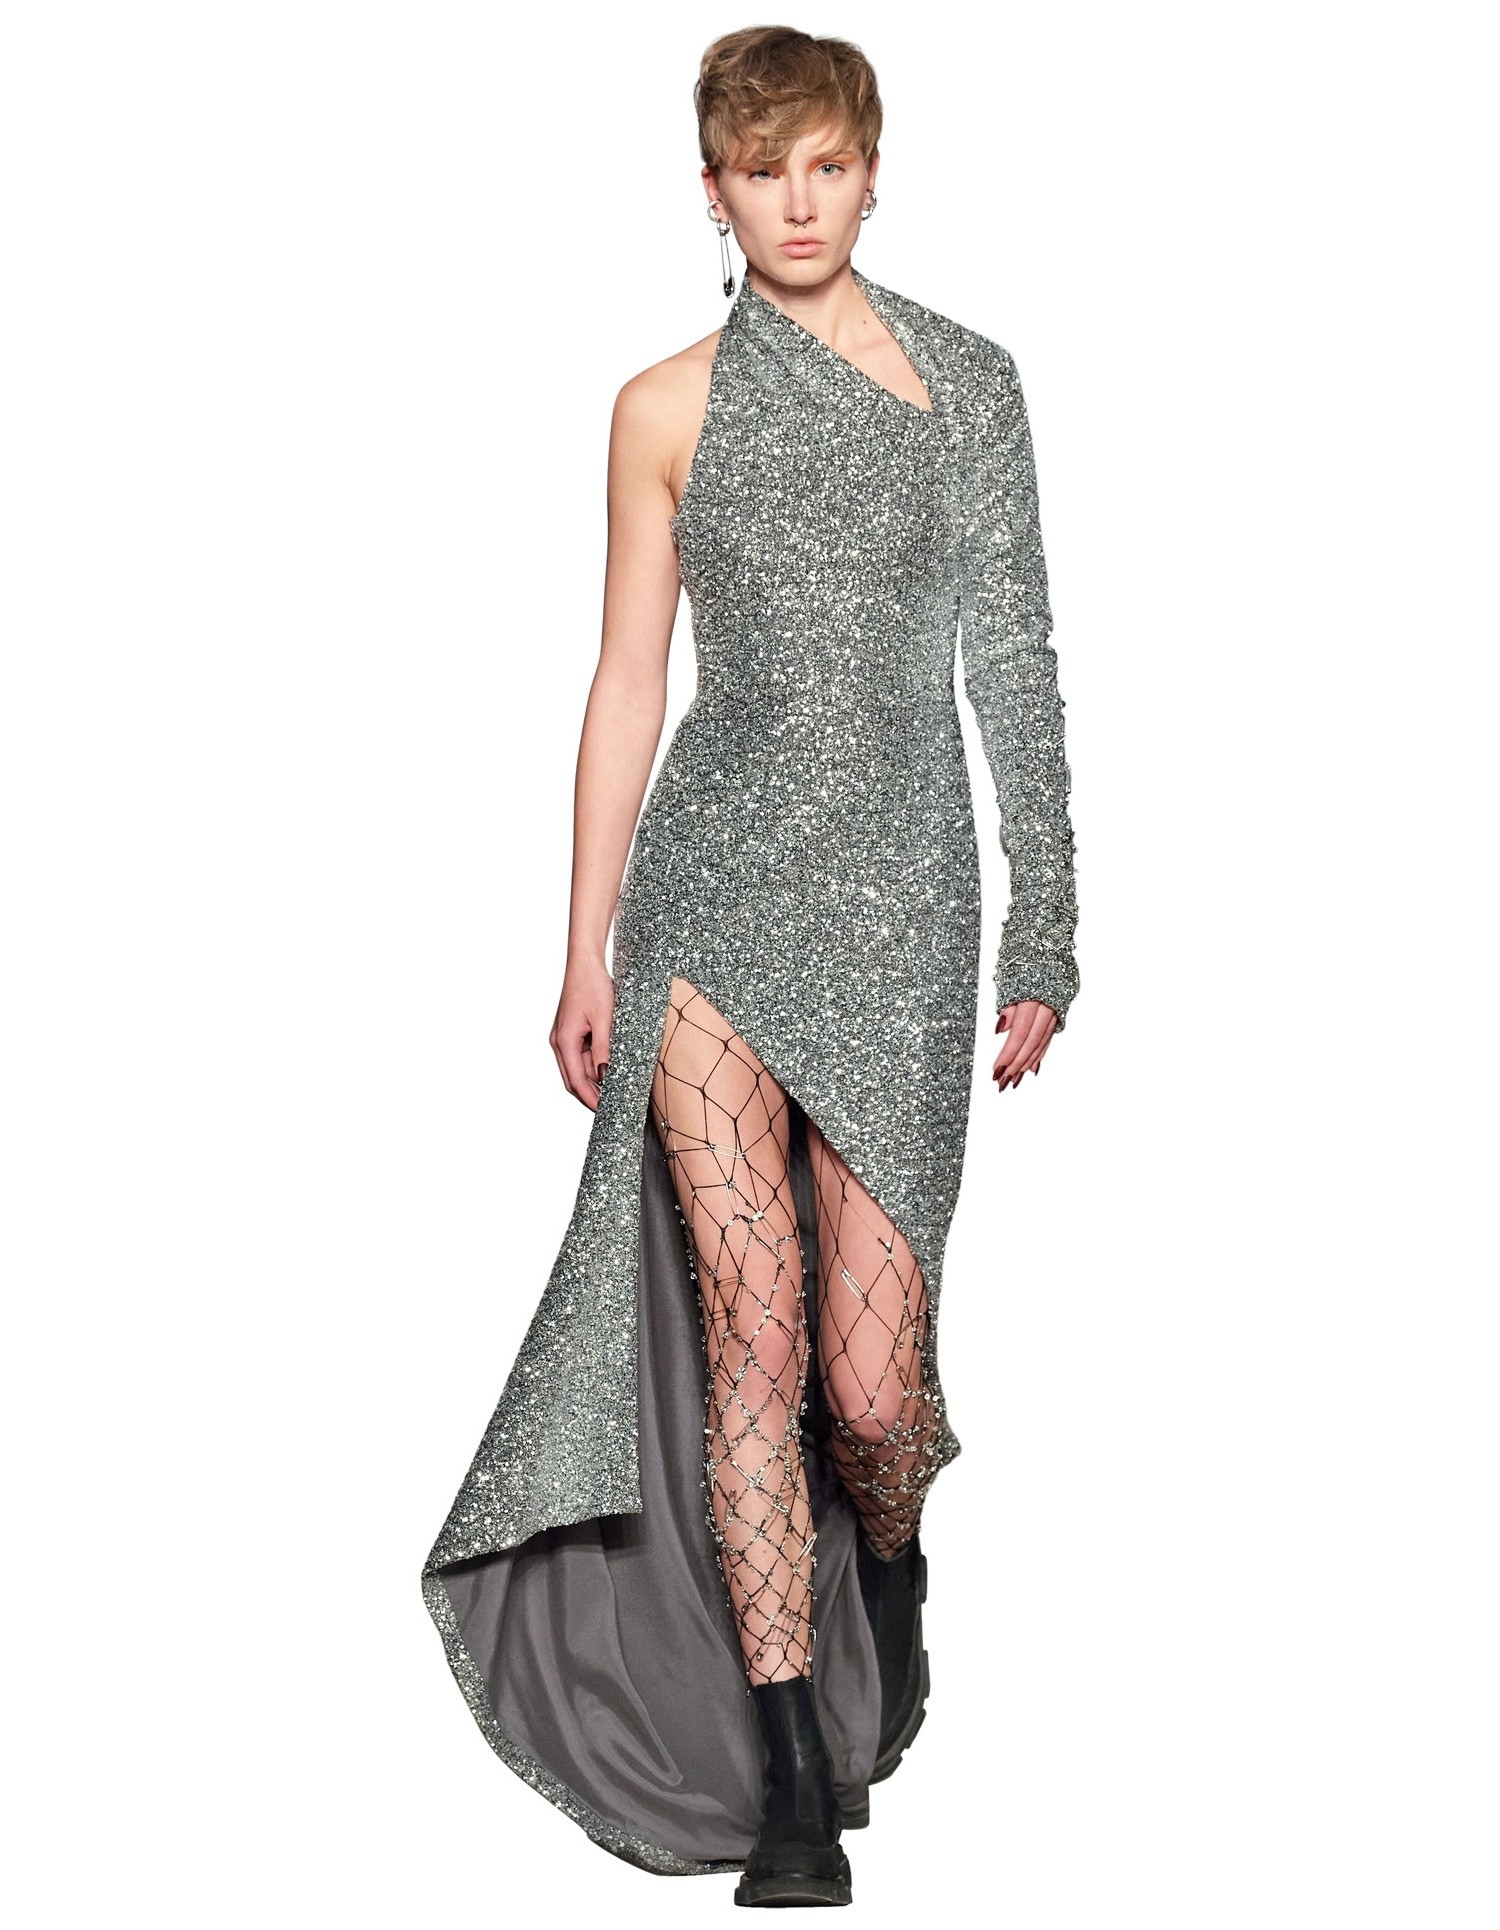 MONSE Sequin Sliced Gown in Silver on Model Front View